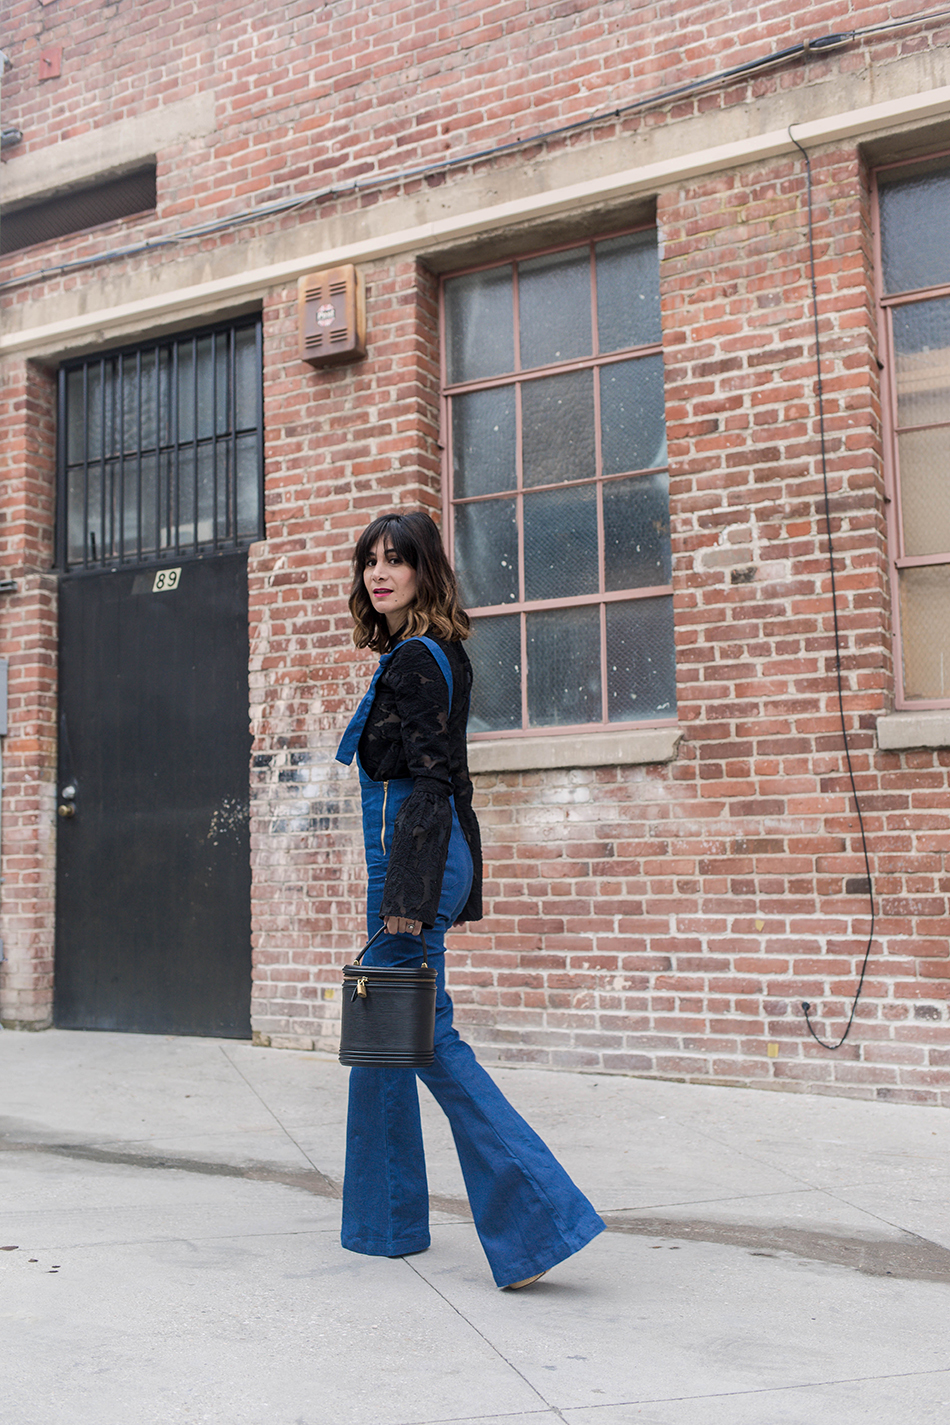 How to Glam Up Overalls